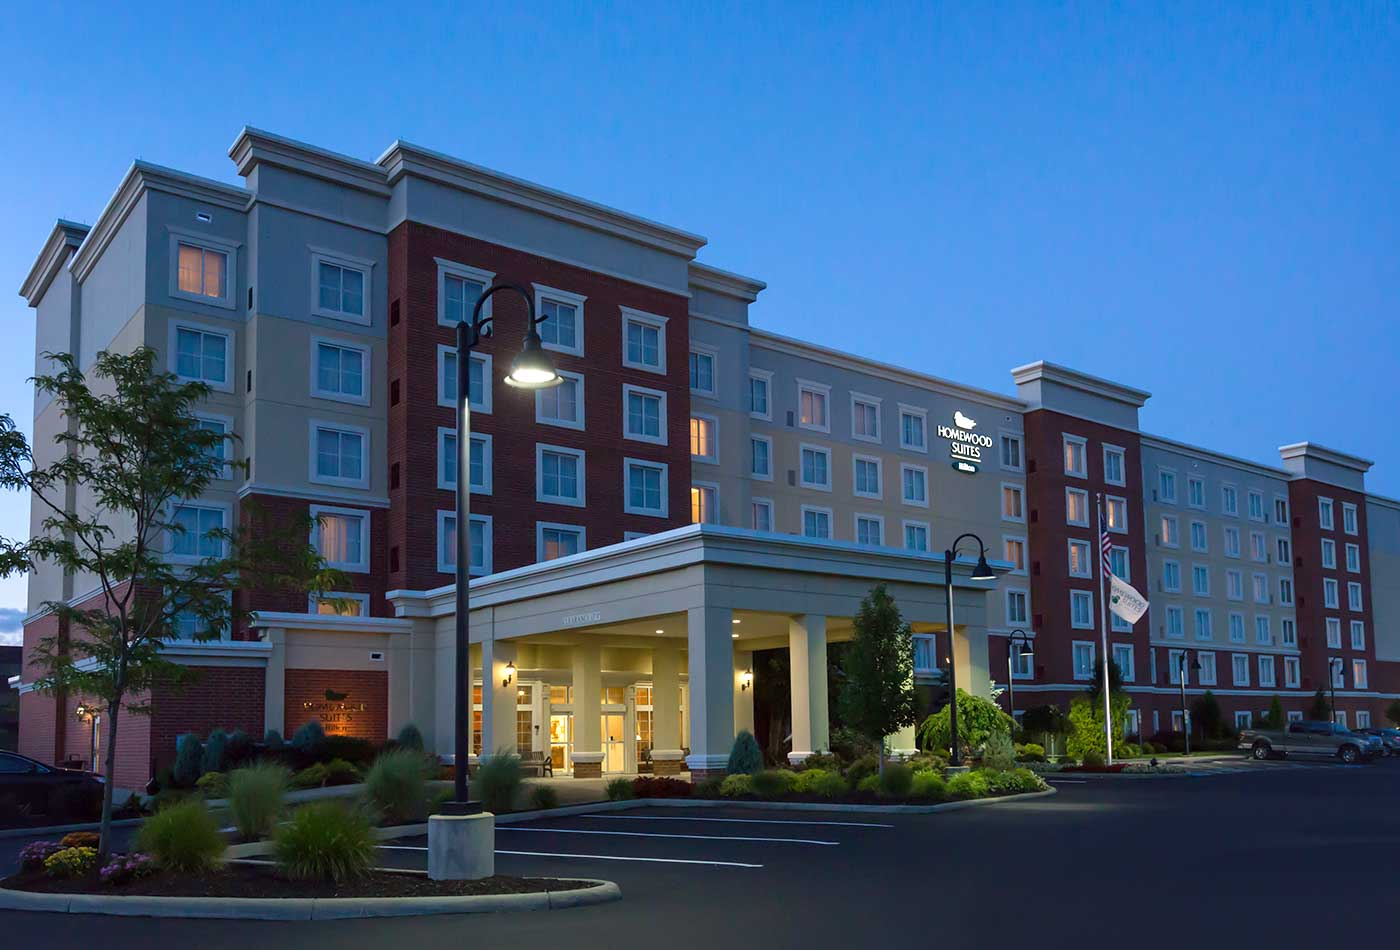 Homewood Suites by Hilton Cleveland Beachwood